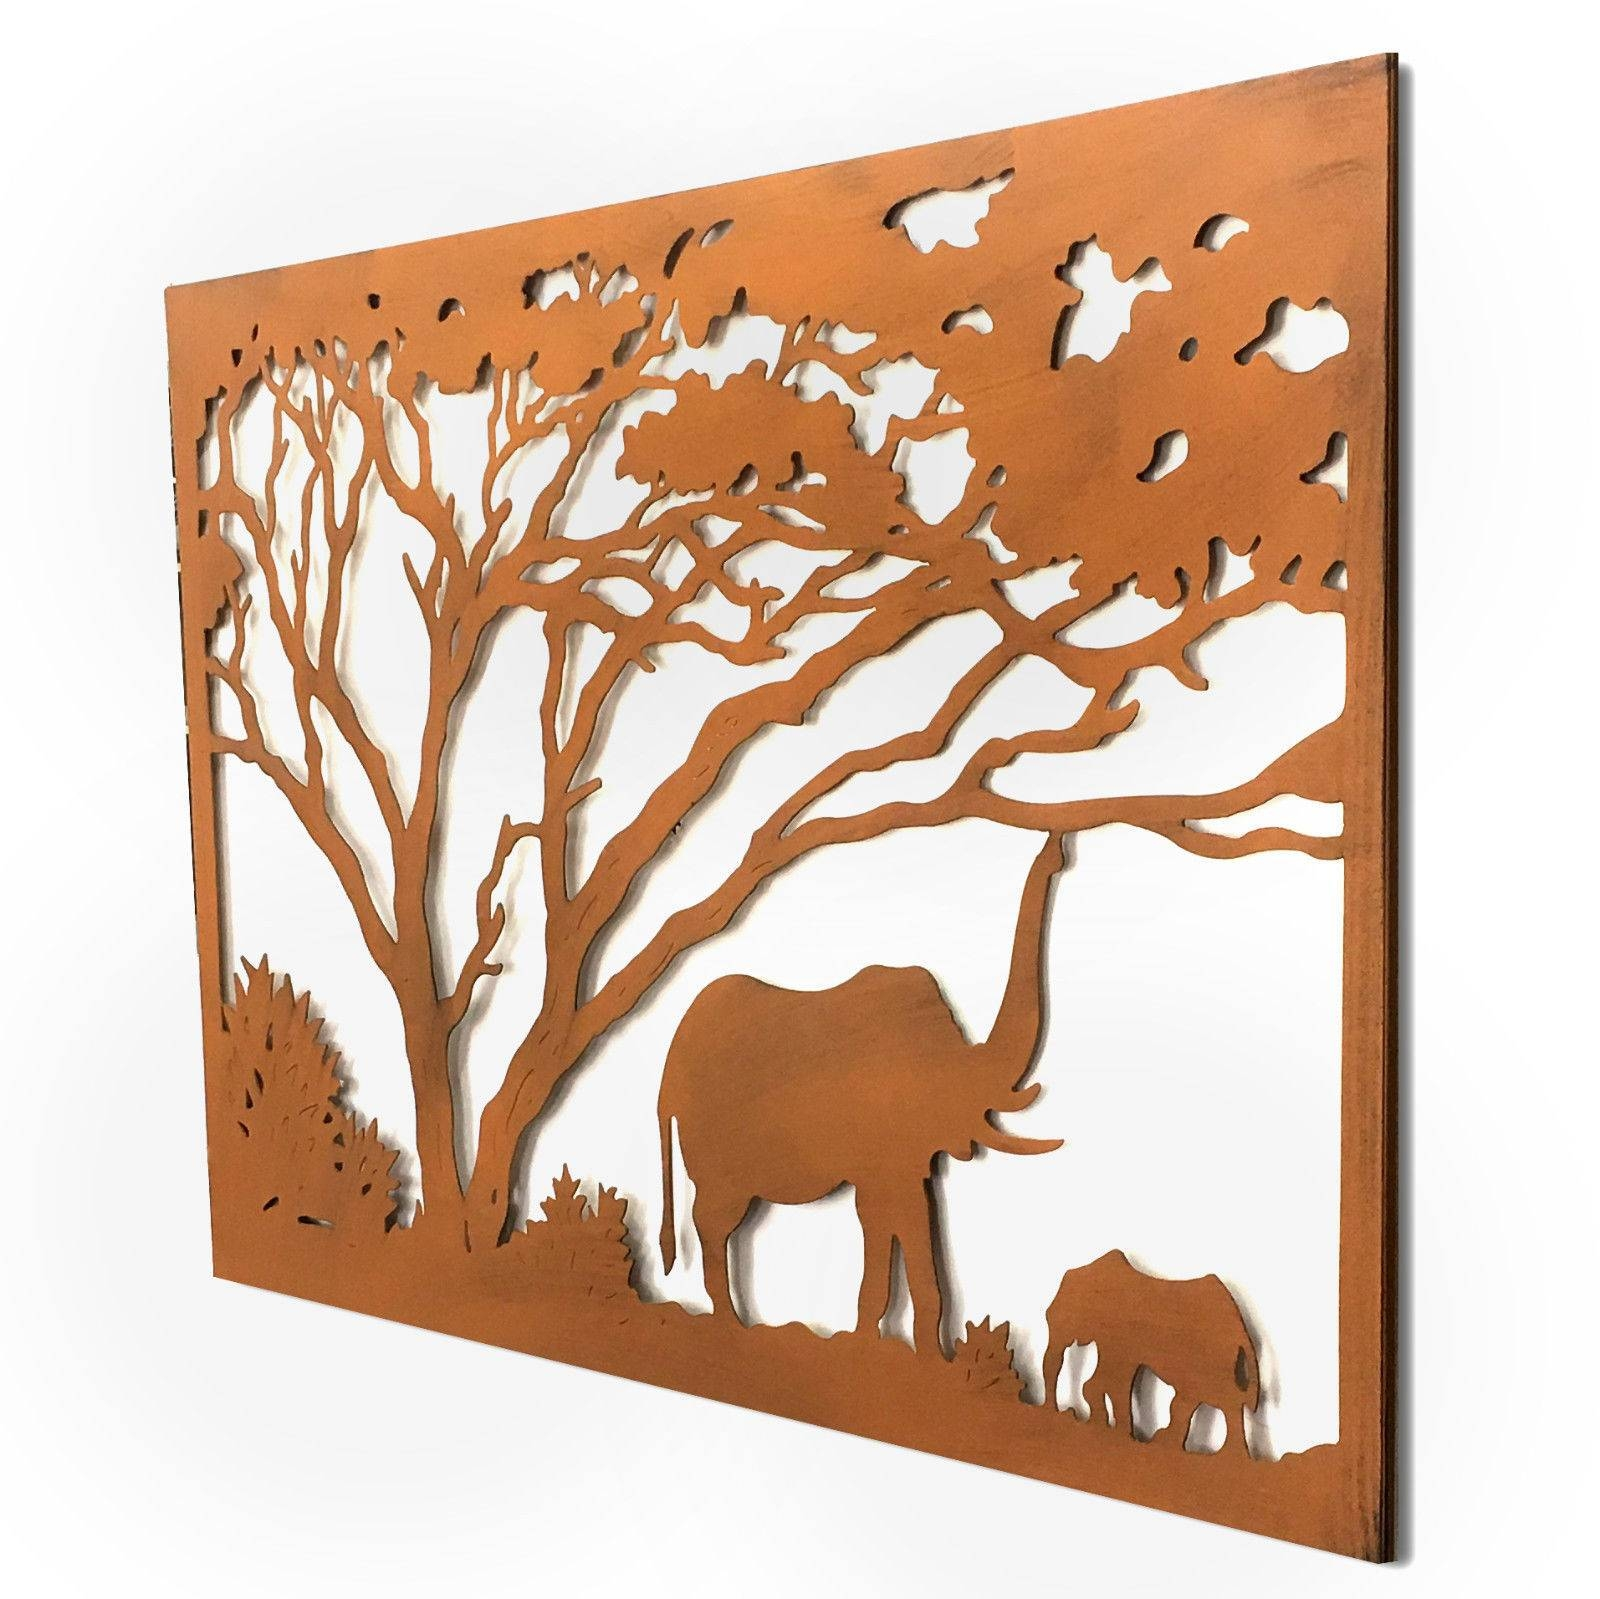 Elephants Under The Trees Lasercut Metal Wall Art 123Cm With Regard To Best And Newest Elephant Metal Wall Art (View 6 of 20)